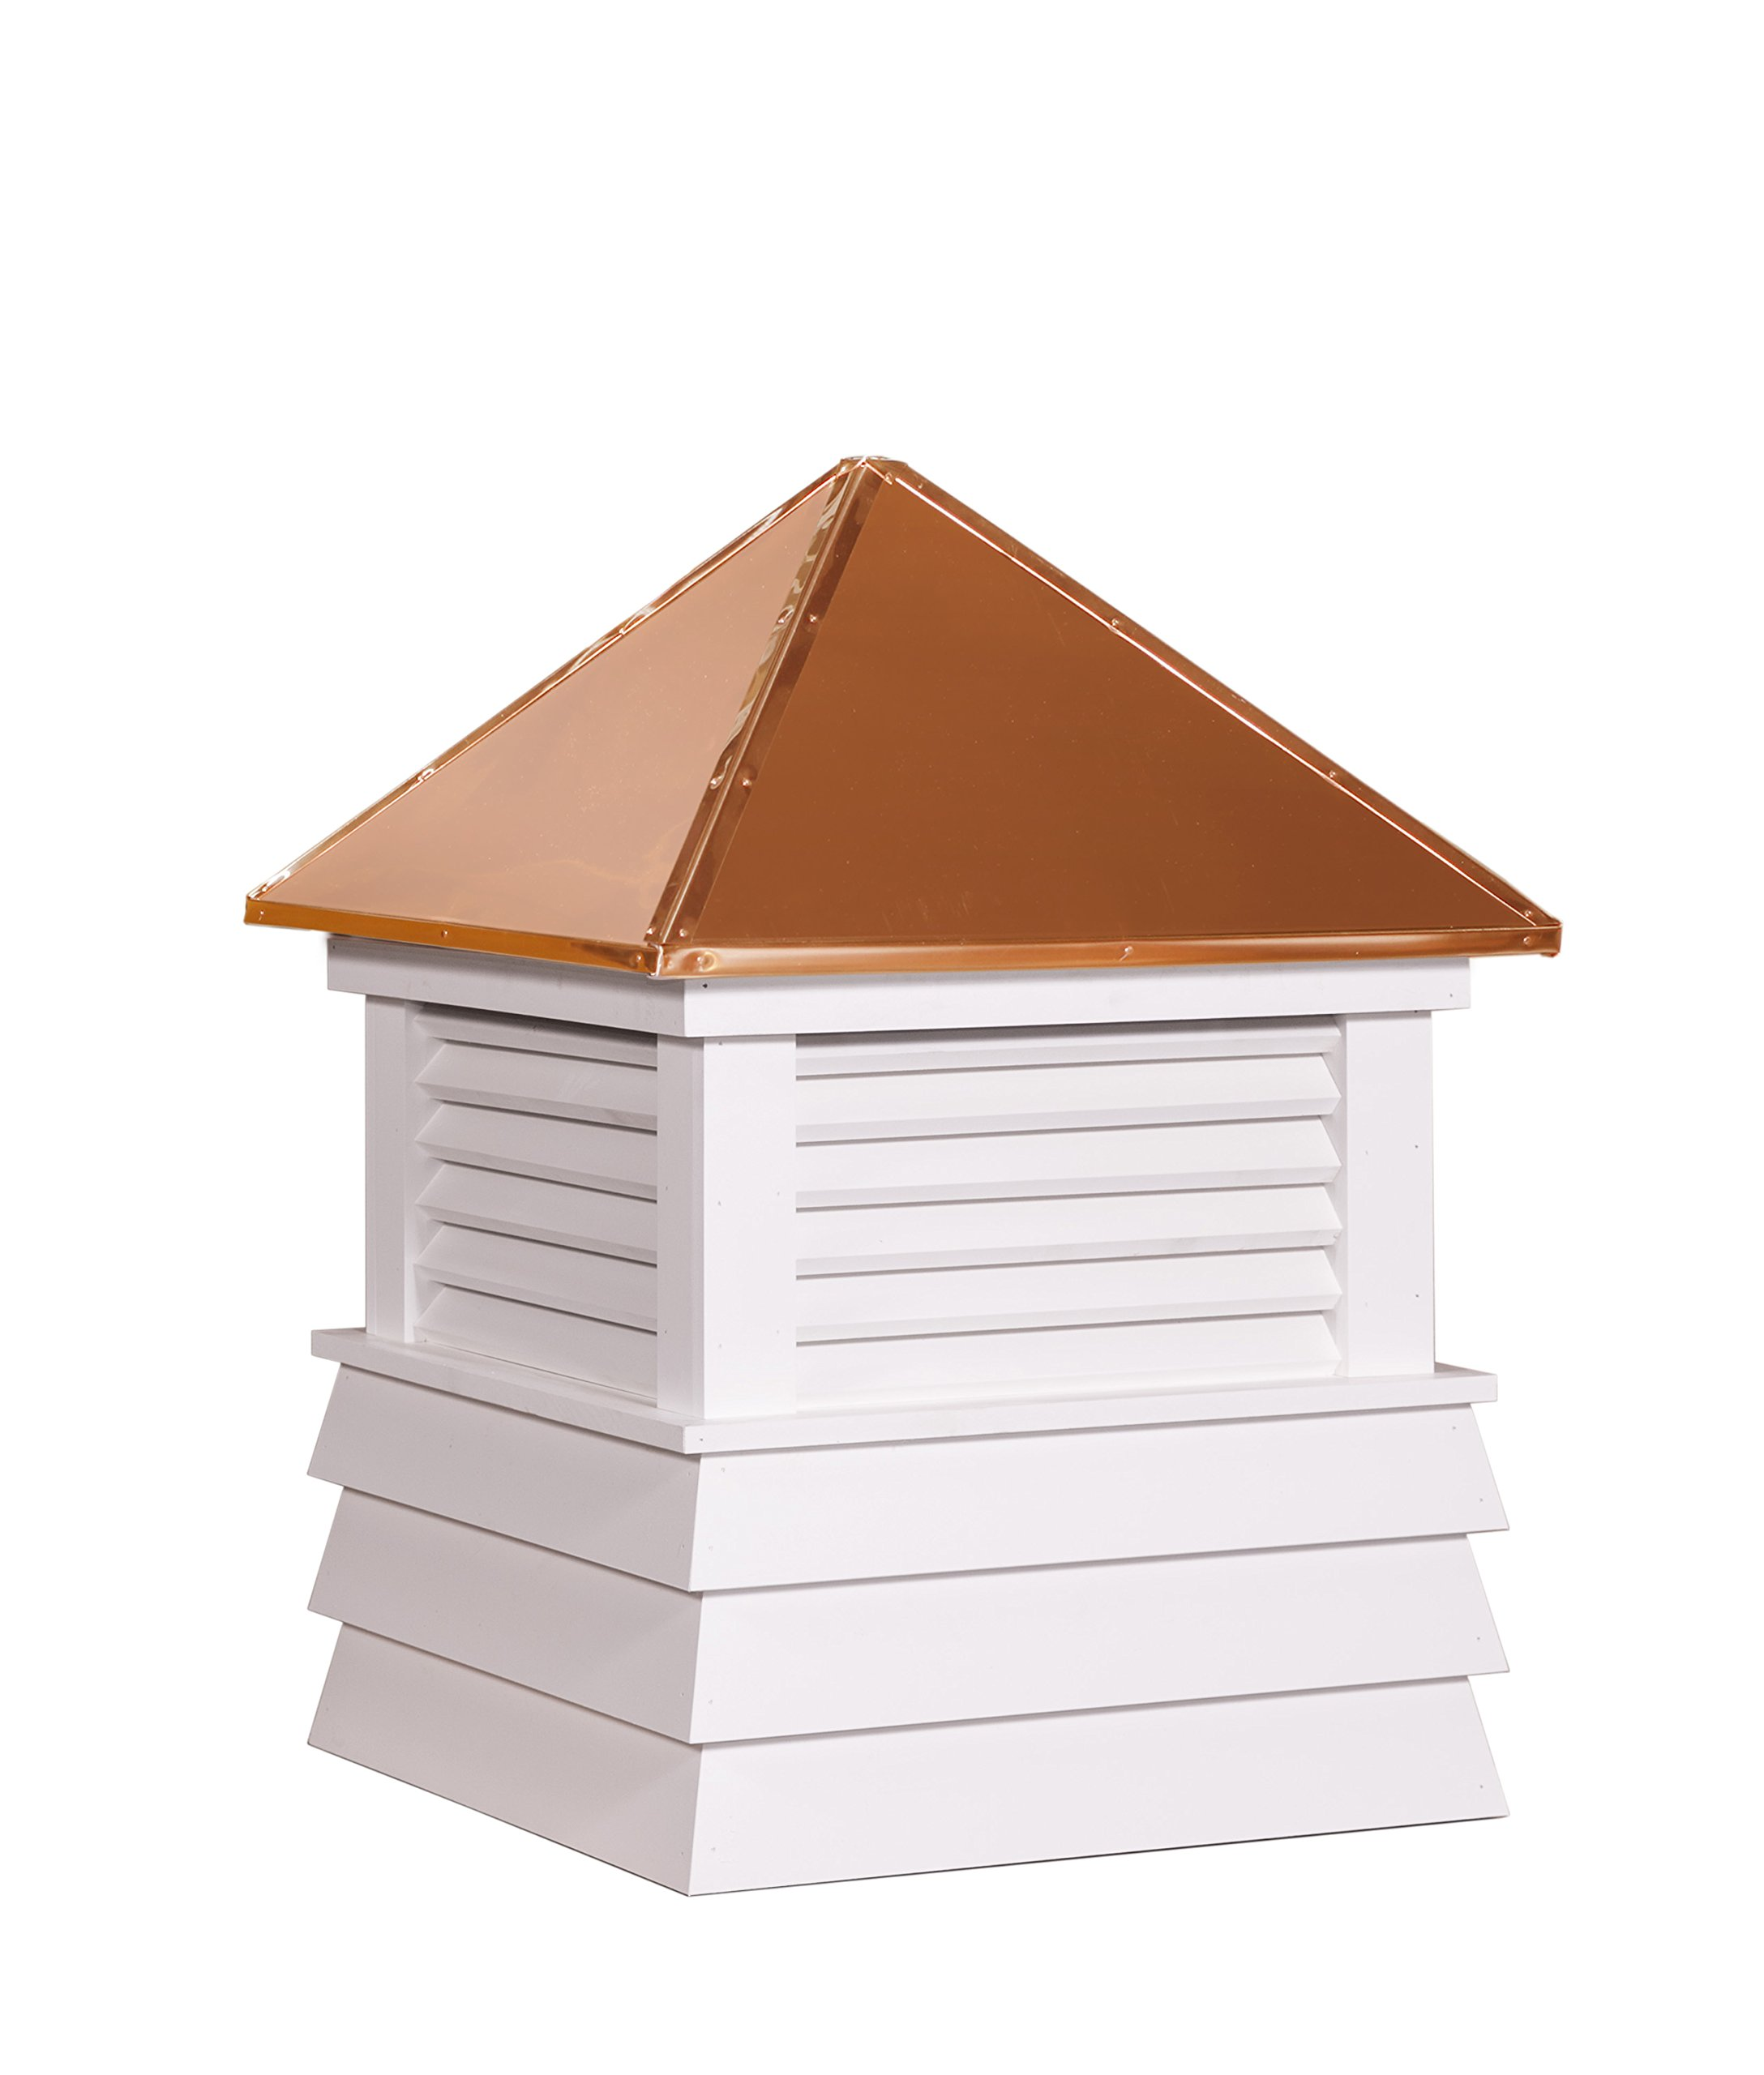 East Coast Weathervanes and Cupolas Vinyl Pembroke Cupola (vinyl, 25 in square x 34 in tall) by East Coast Weathervanes and Cupolas